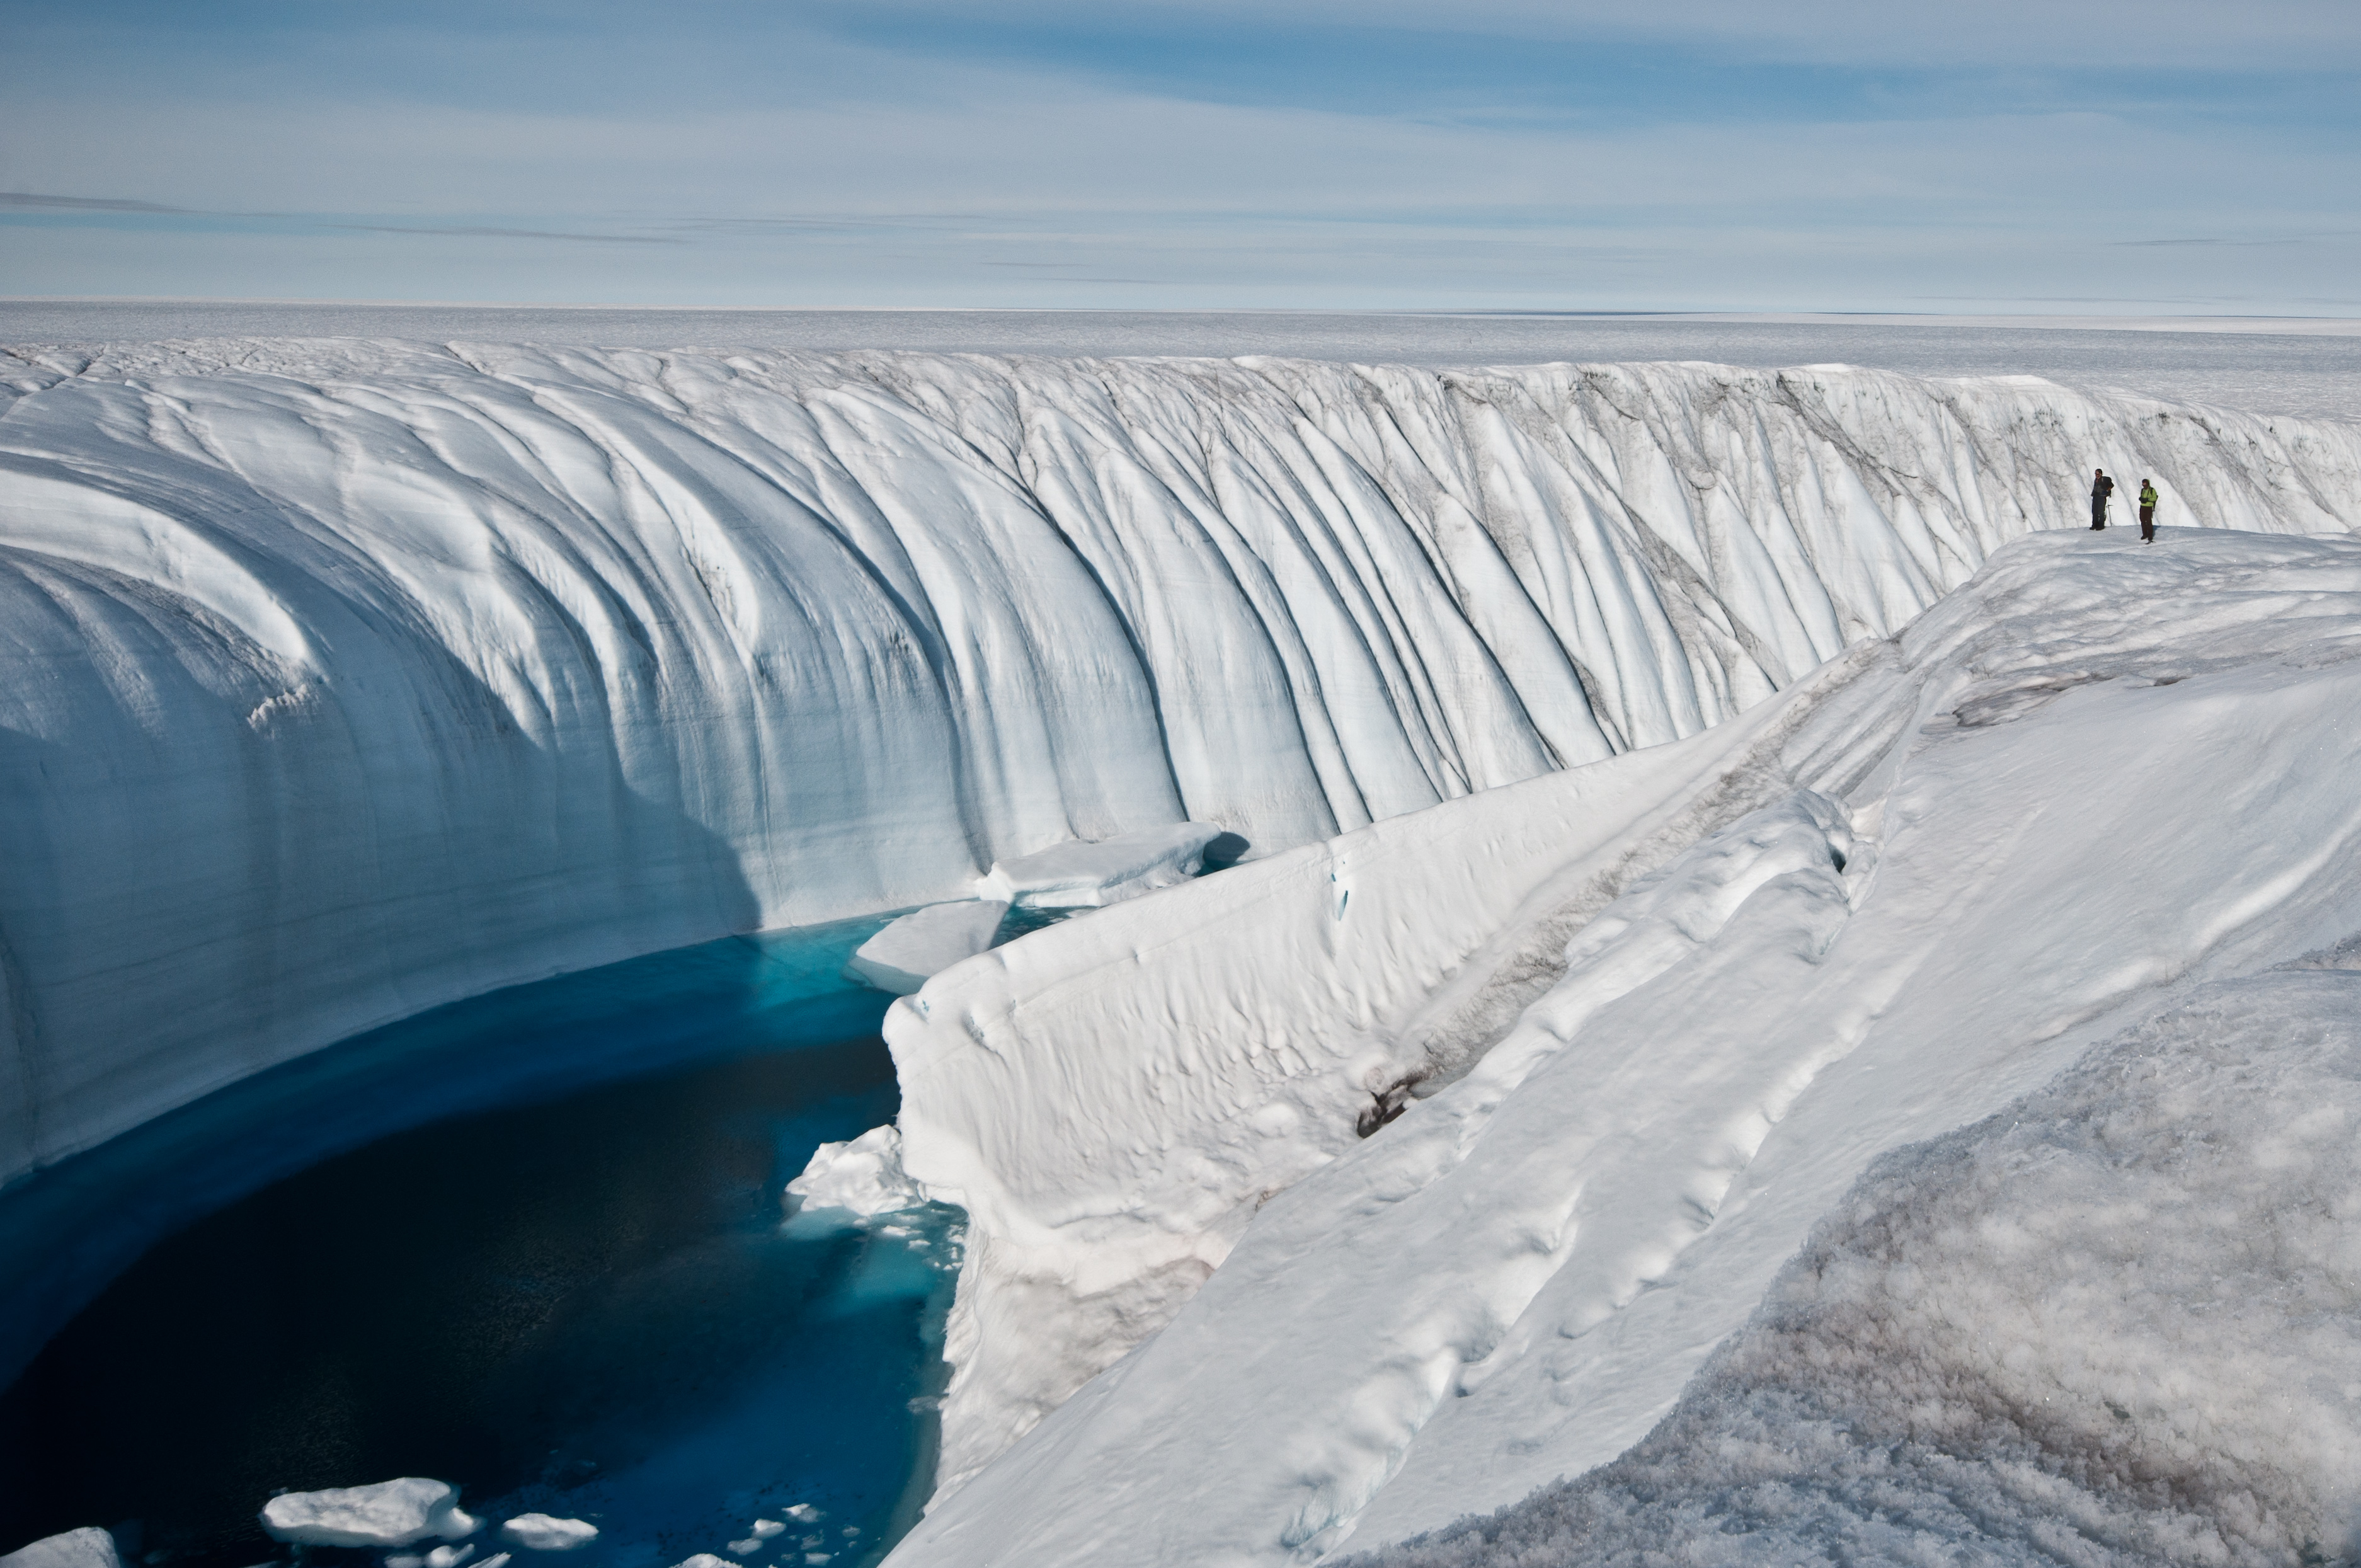 North Pole Ice Cap